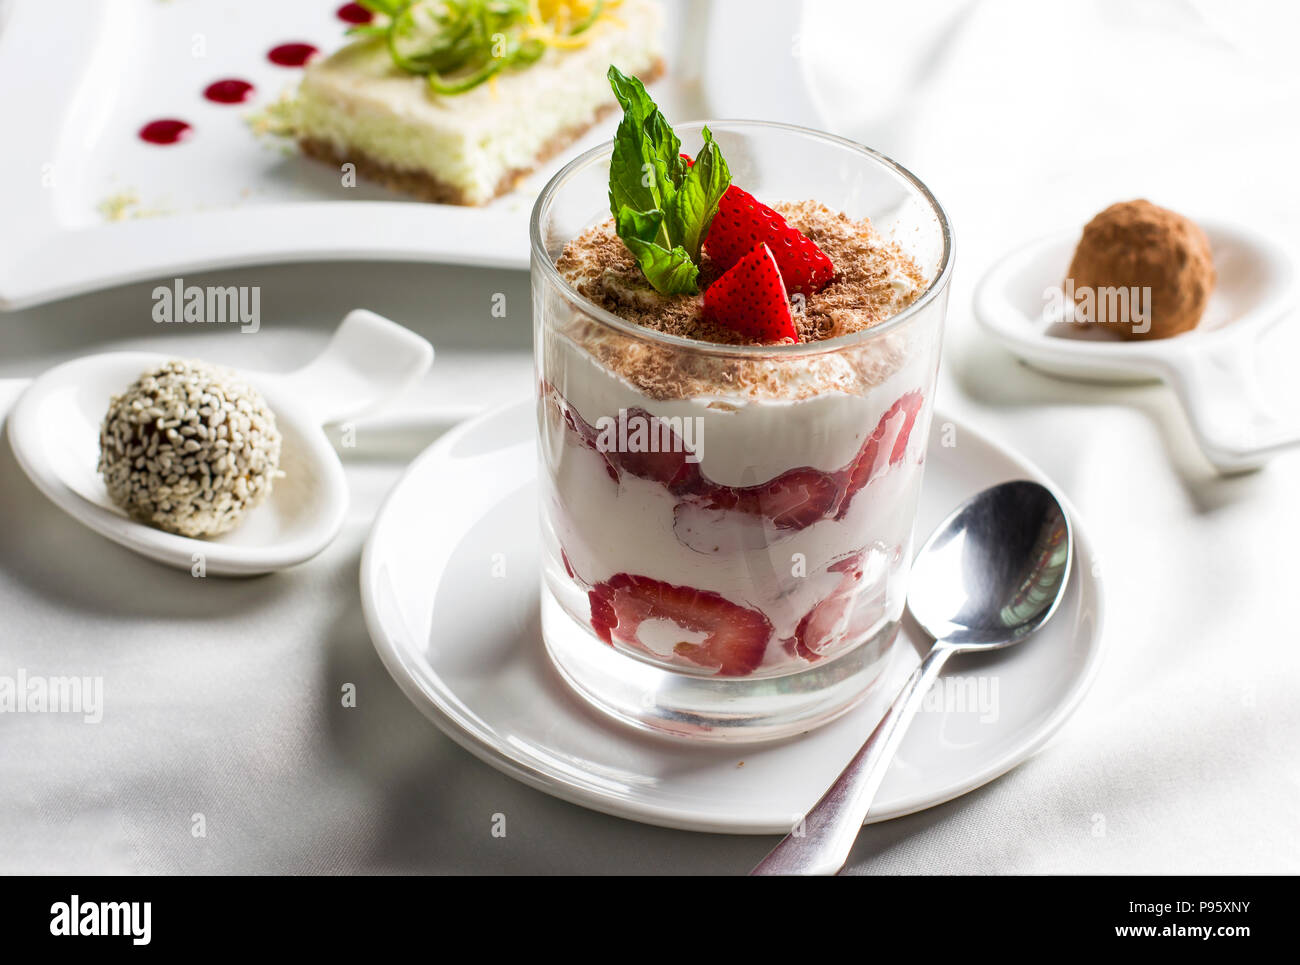 Sweet table with organic raw food desserts, sweets, yogurt with strawberries and cake - Stock Image